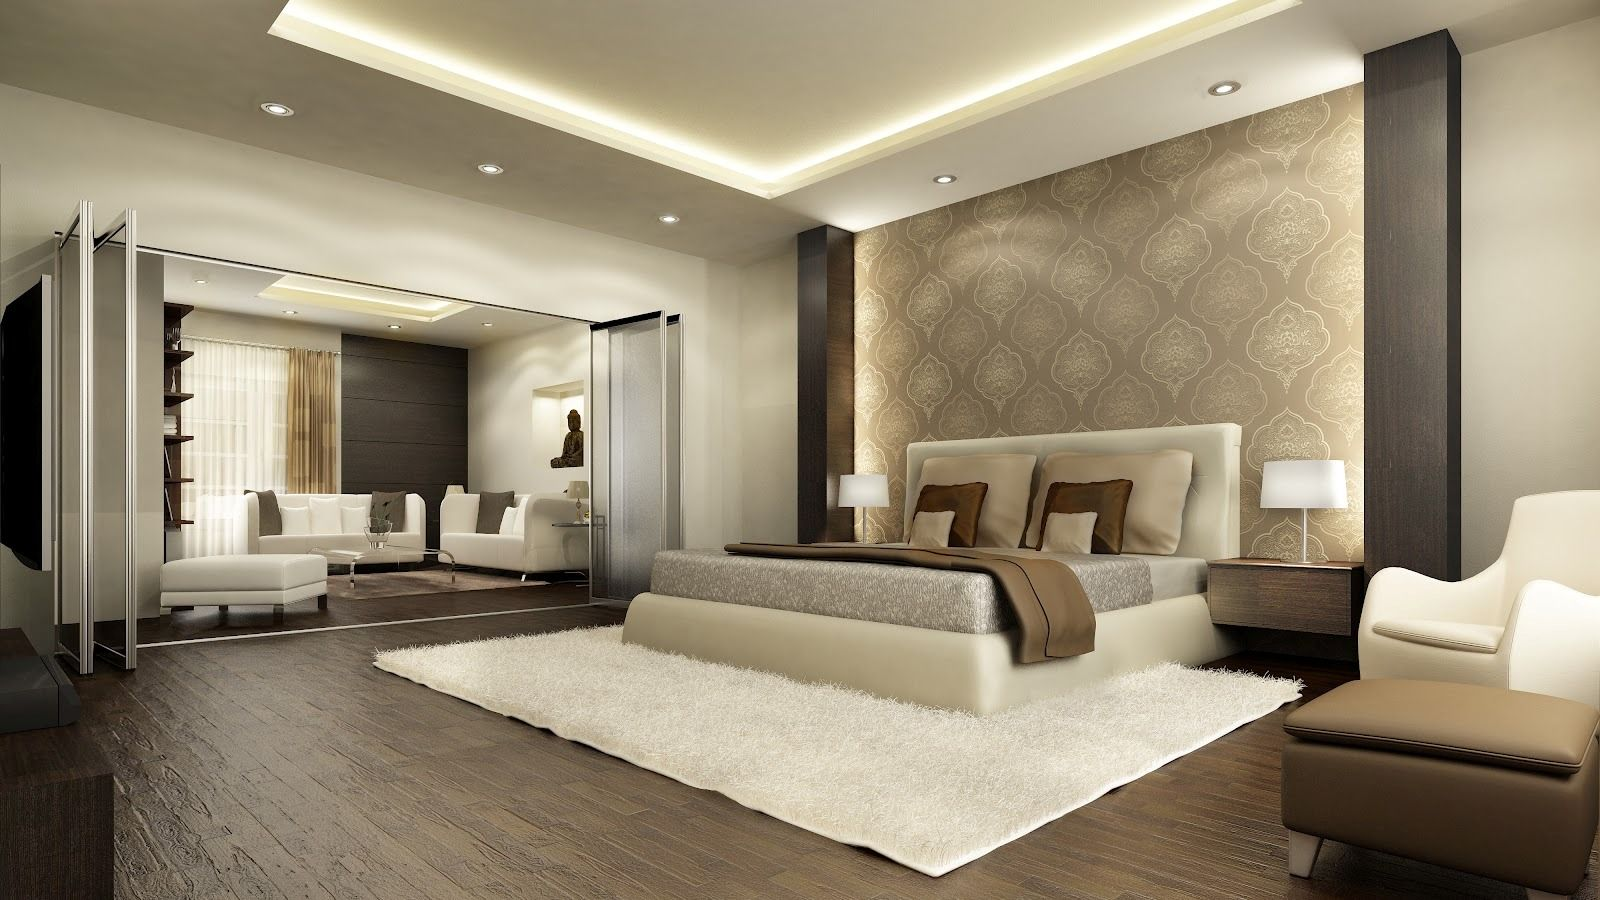 Modern master bedroom ceiling designs - Bedroom Modern Bedroom Design Ideas For Small Bedrooms Luxurious Master Bedroom Design Modern Bed Design For Your Bedroom Design Creation